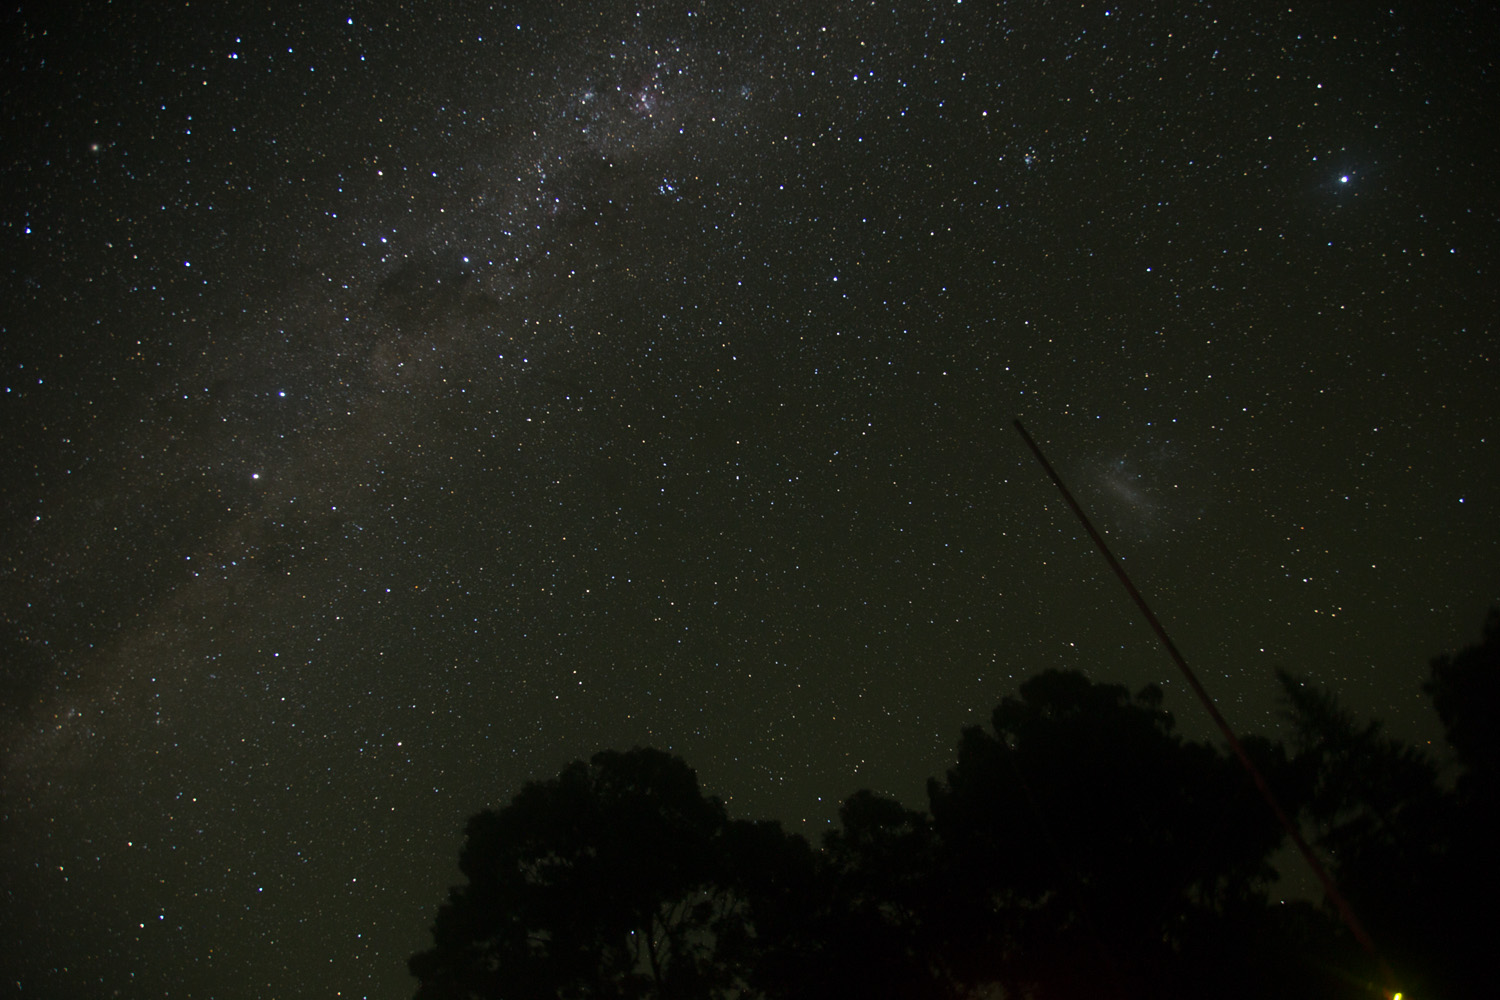 The Southern Milky way and the Large Magellanic Cloud